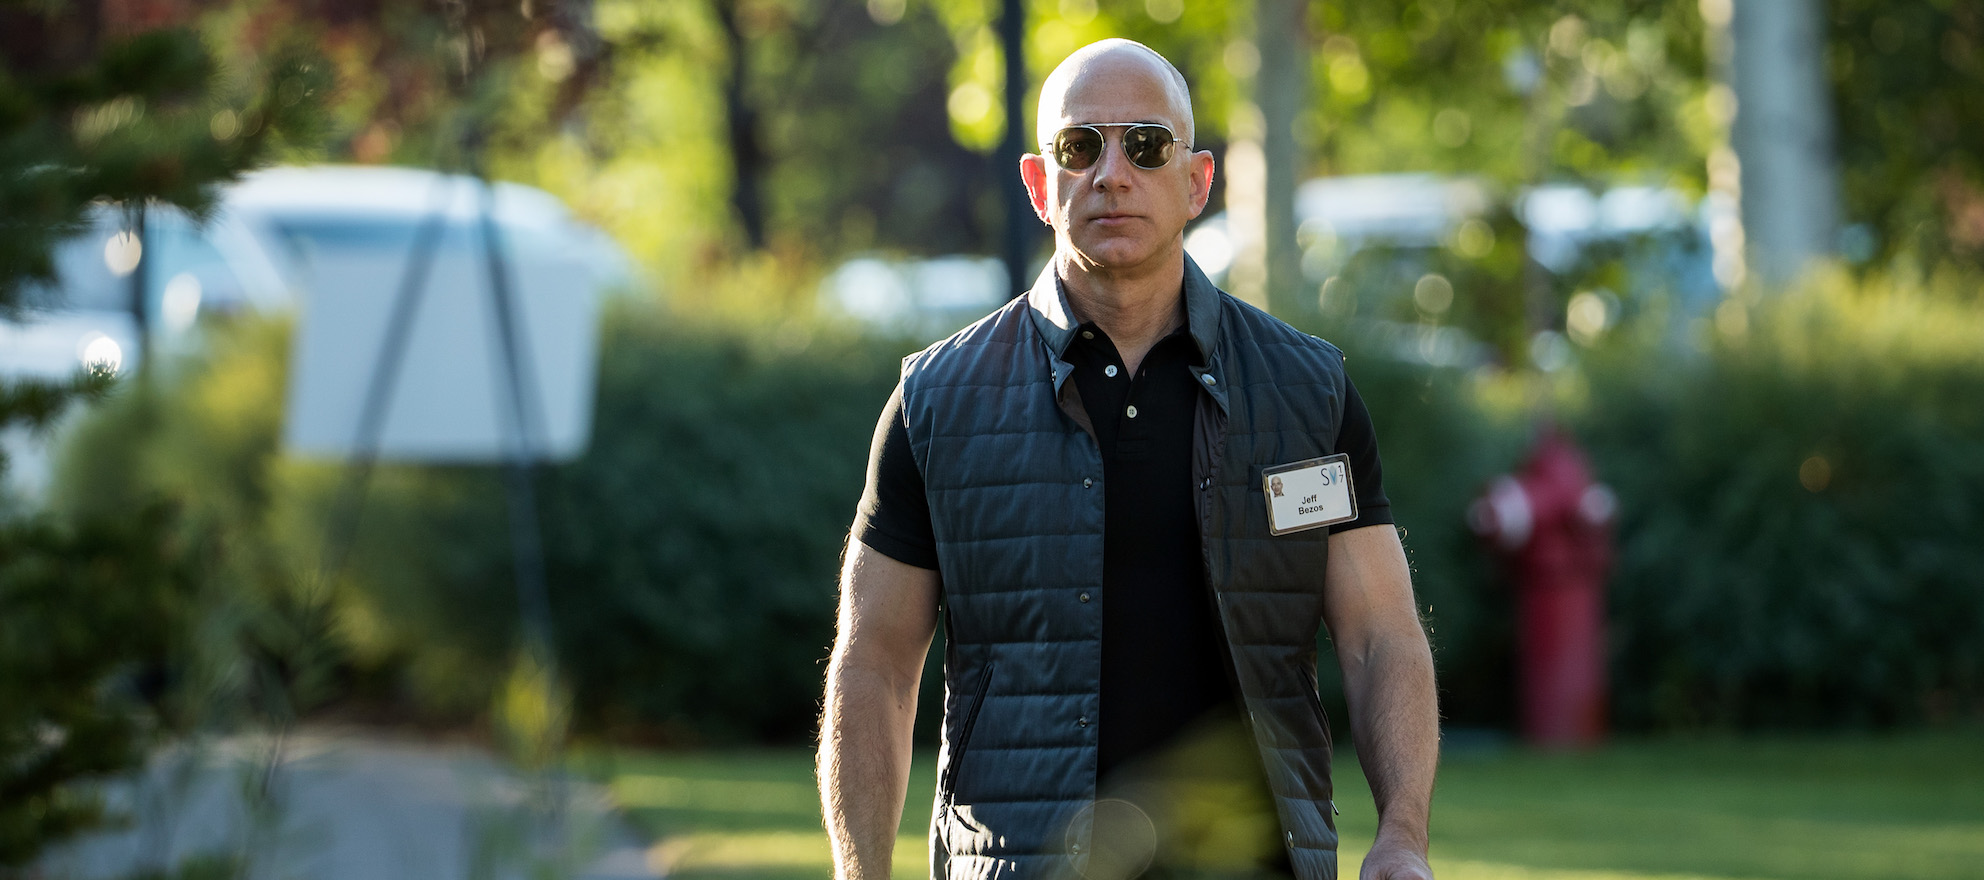 Amazon's Bezos pledges $2B to fight homelessness, improve preschool access